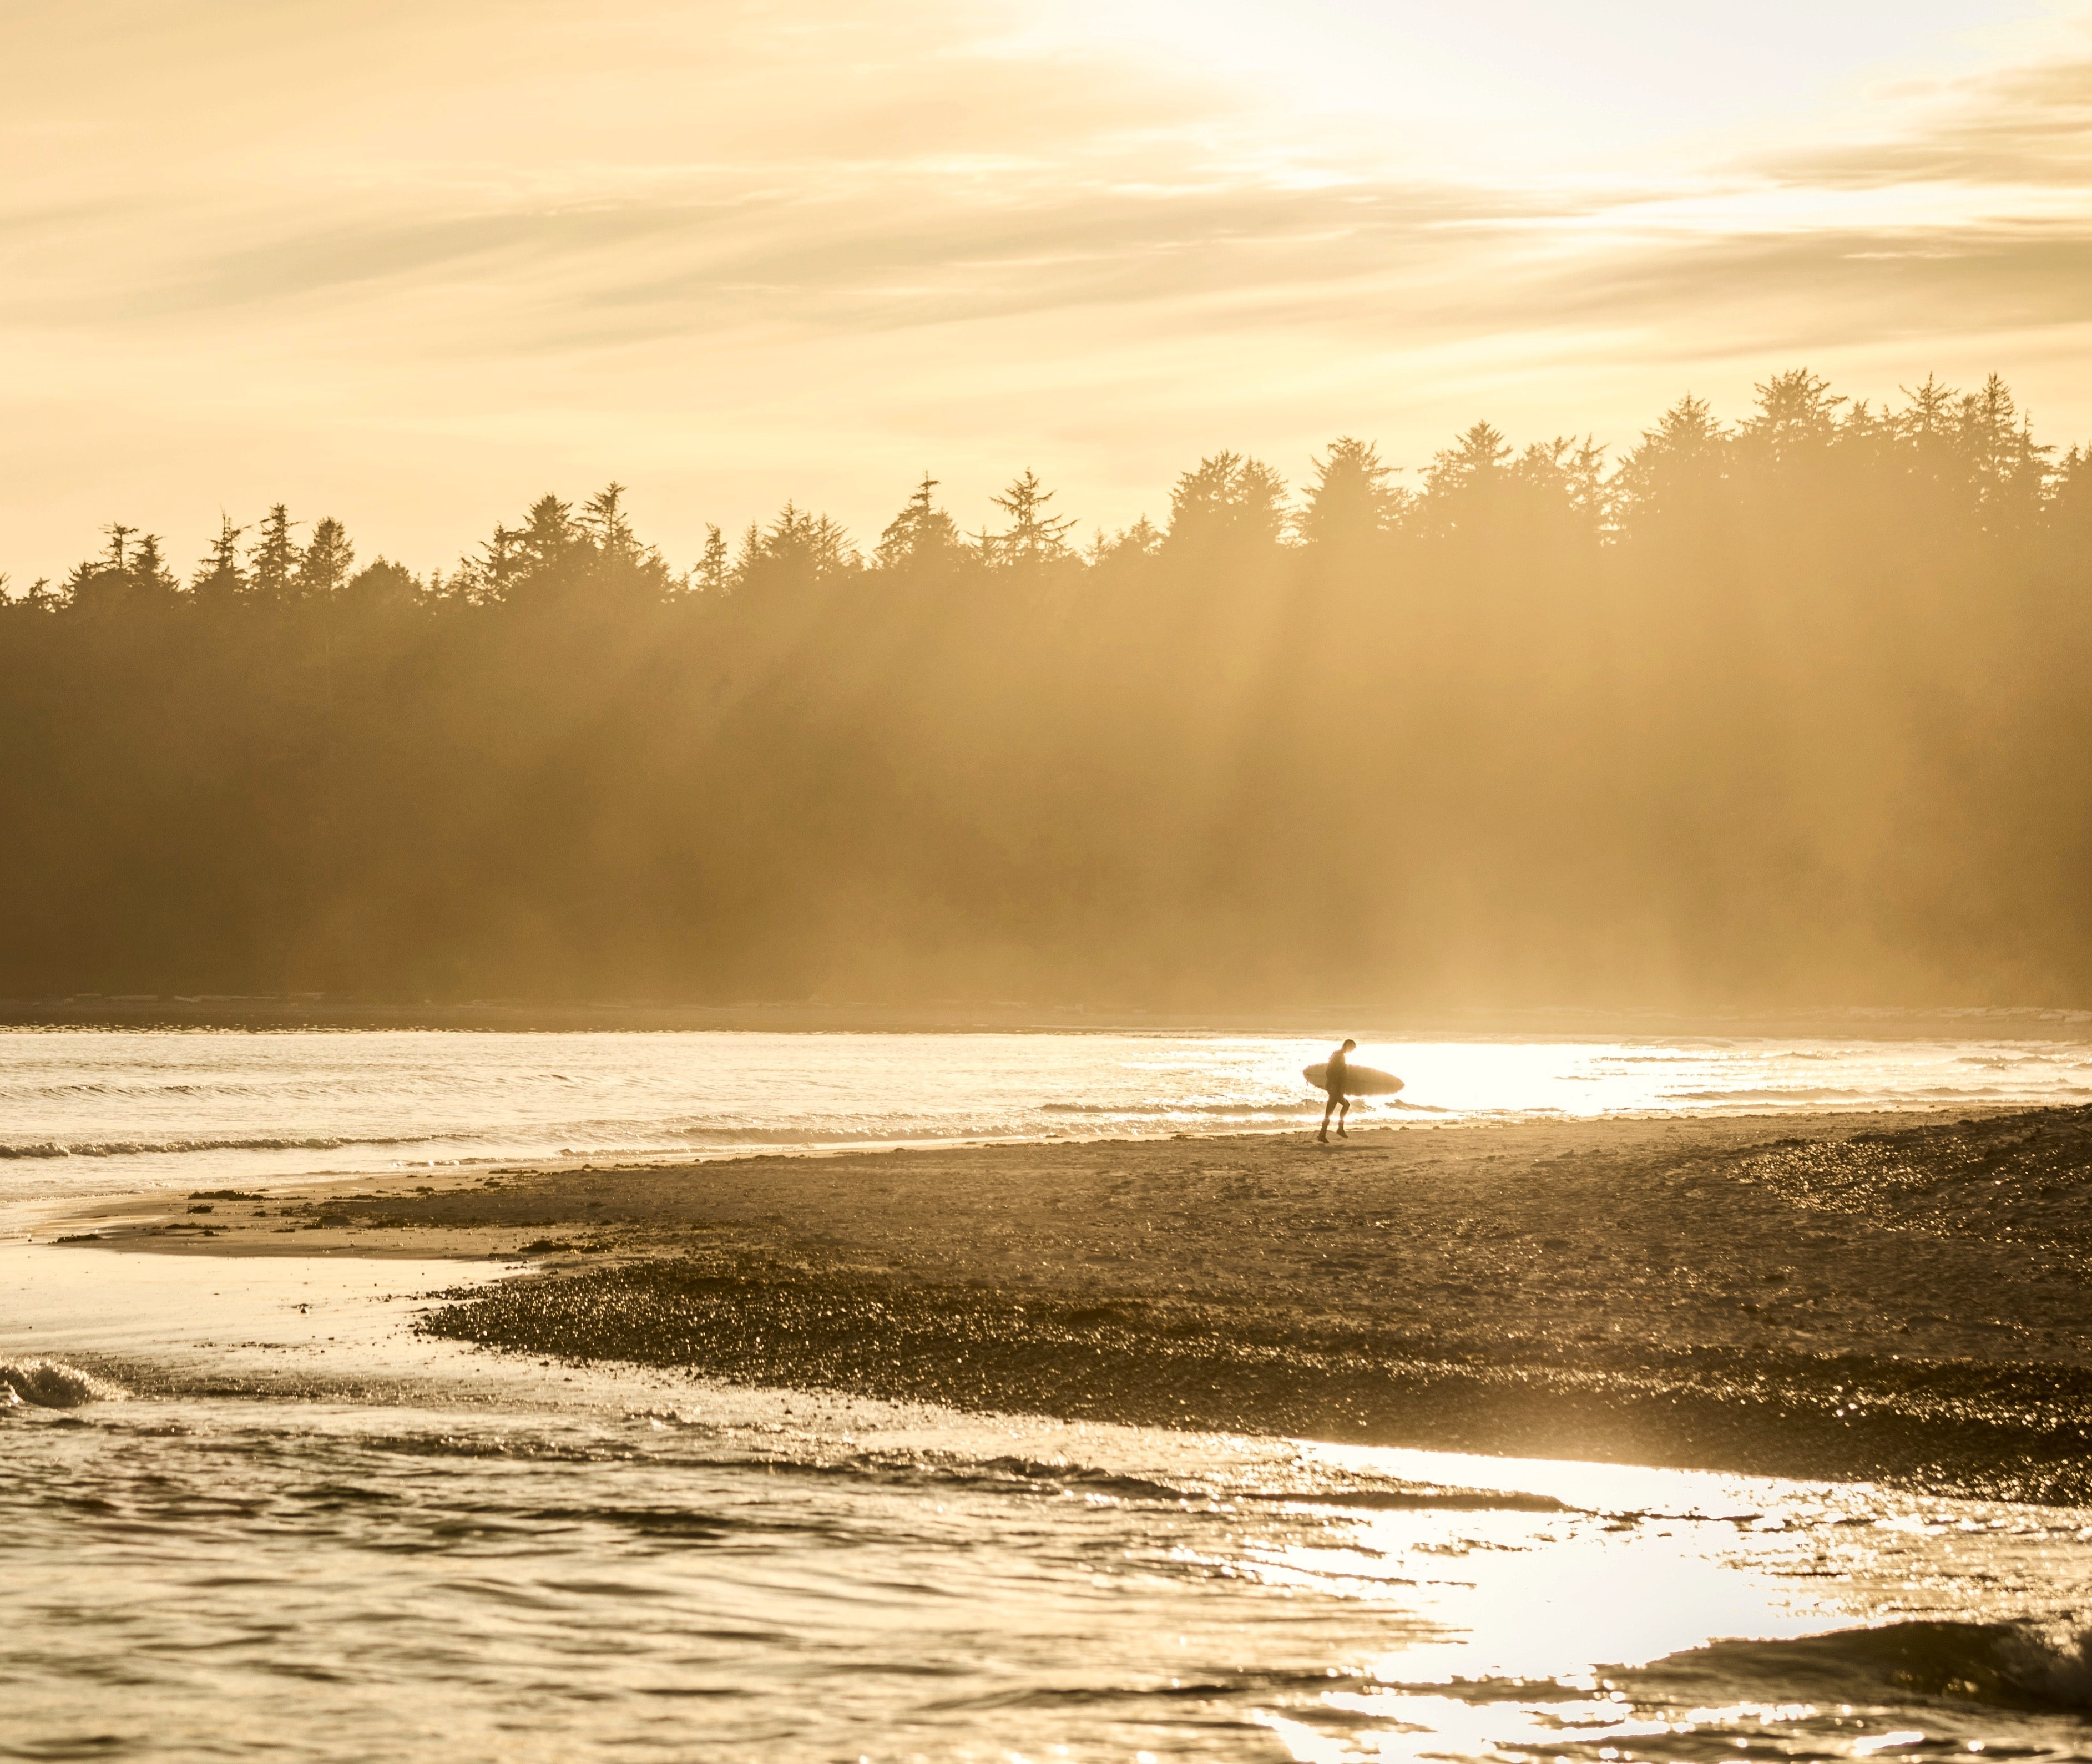 Surfer carrying surfboard walking on the beach by the forest at Promontory, Chilliwack, British Columbia, Canada